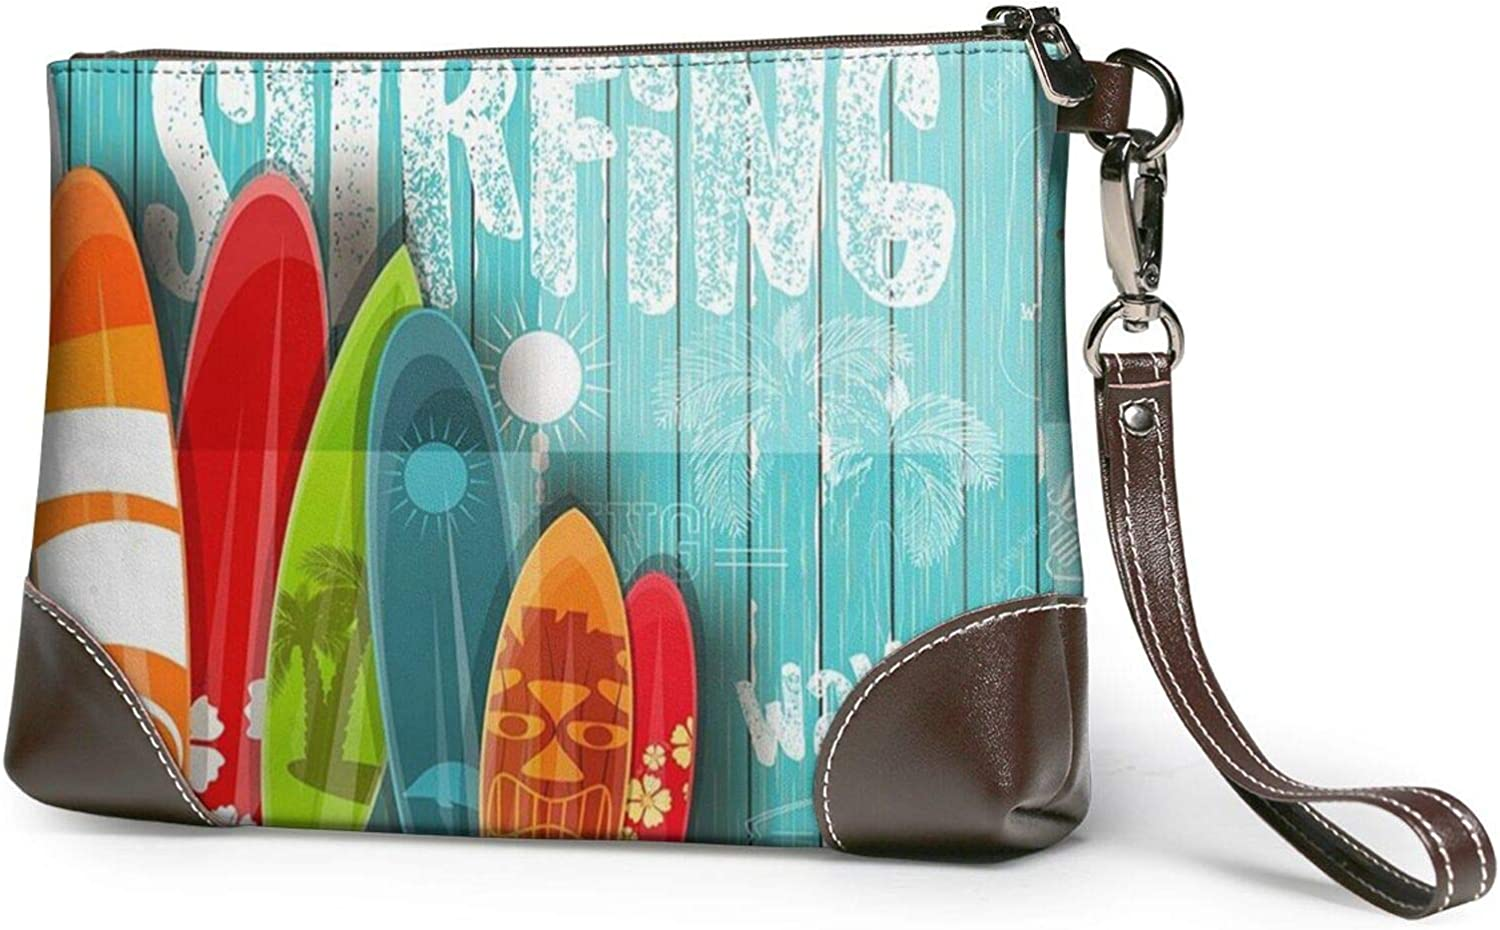 Surfboard Seasonal Wrap Introduction Chicago Mall In Vintage Style On Purses Turquoise Wooden Clutch Lea